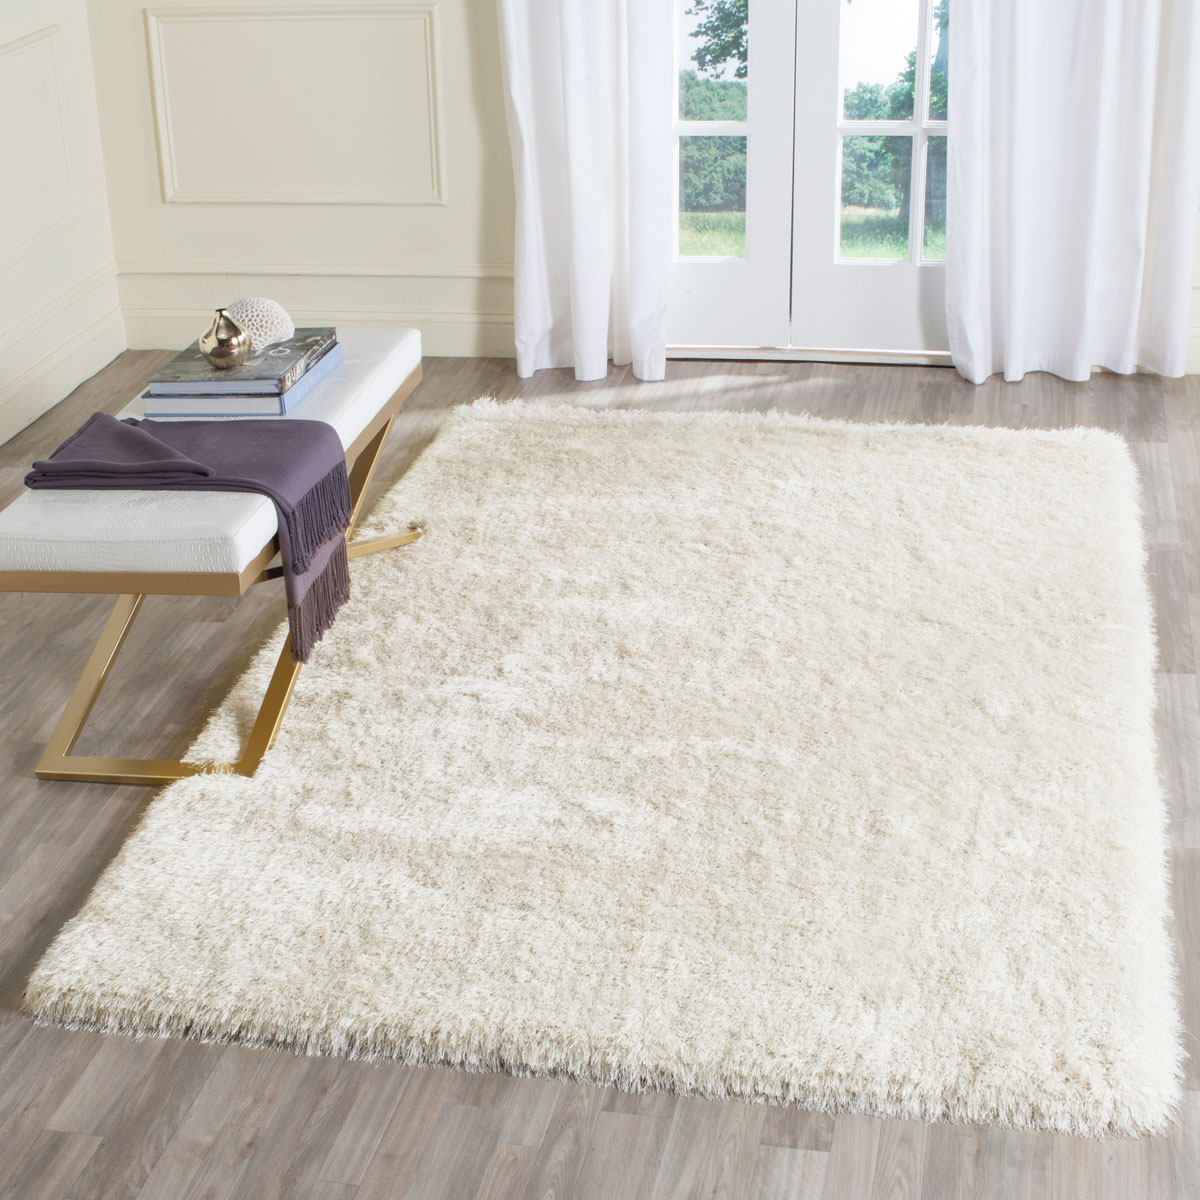 Rug SGP256A - Plush Shag W/ Memory Foam Area Rugs by Safavieh